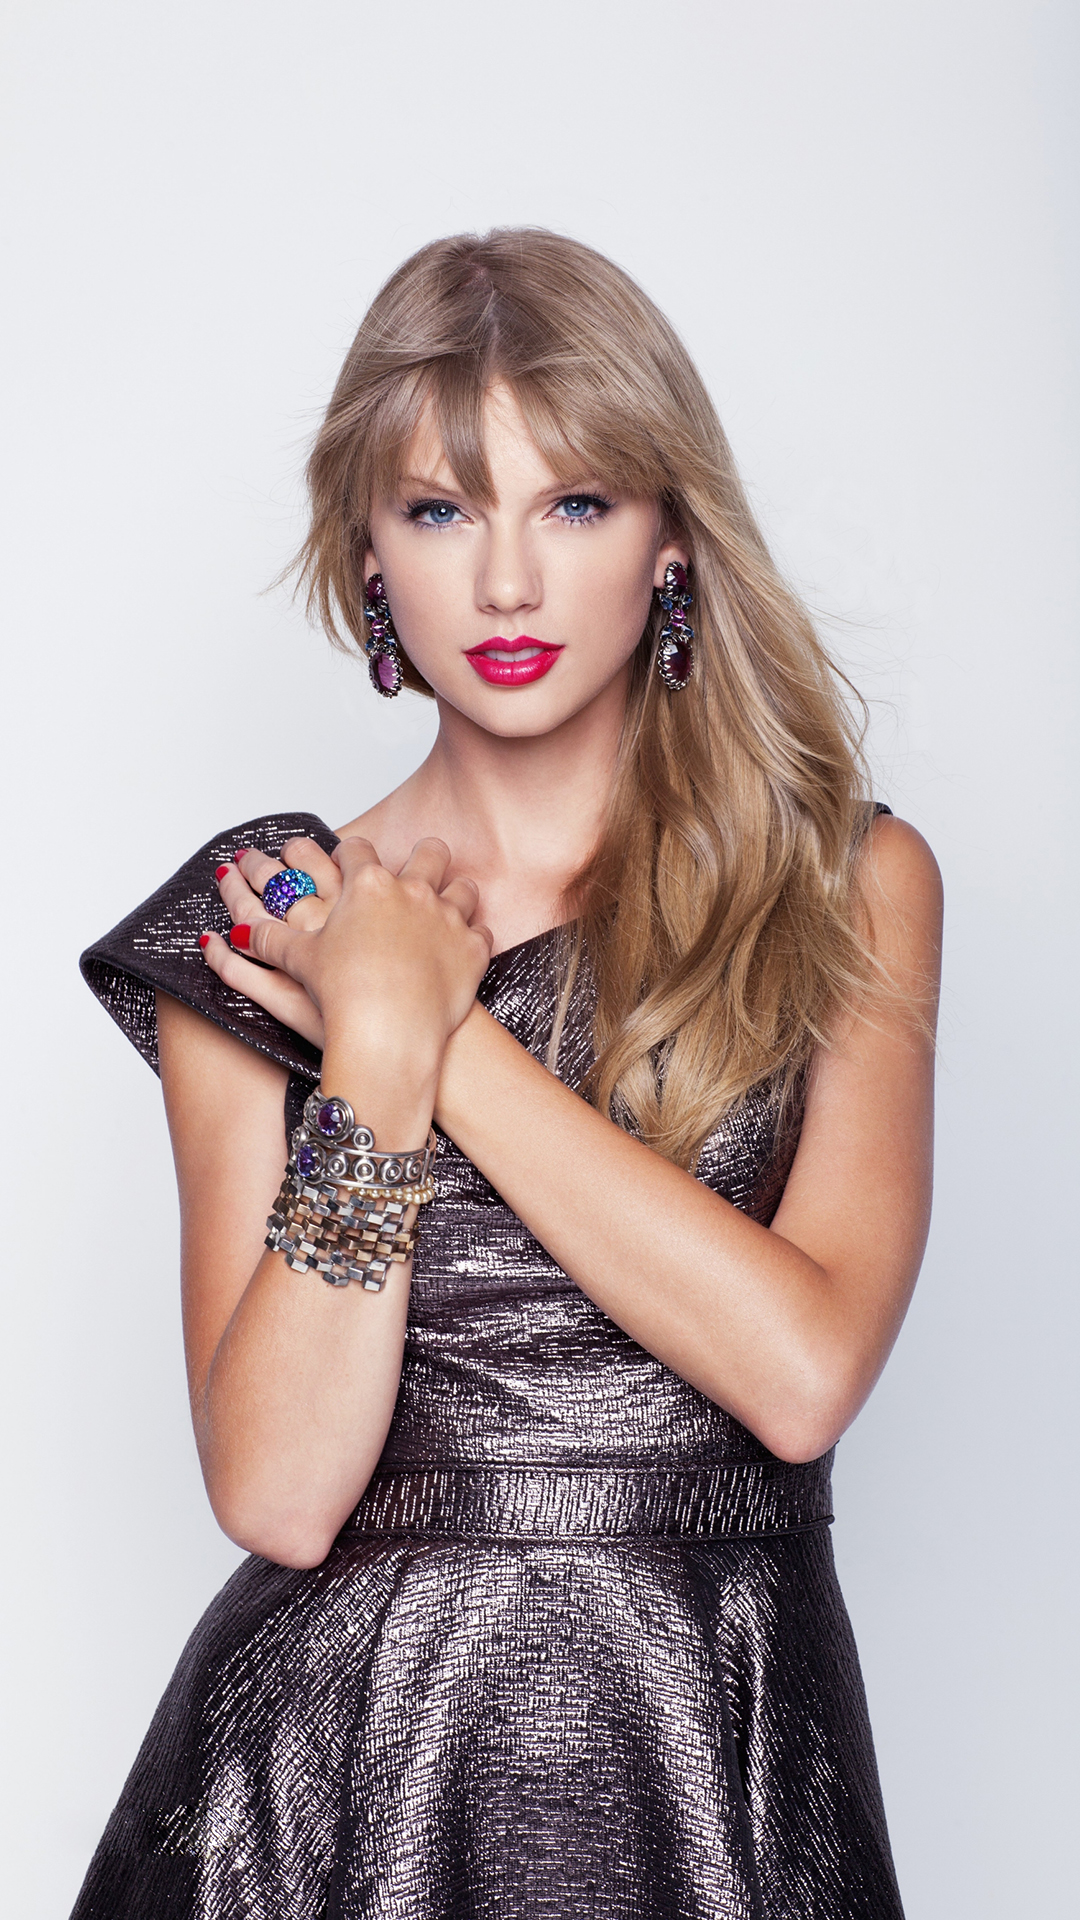 taylor swift - best htc one wallpapers, free and easy to download